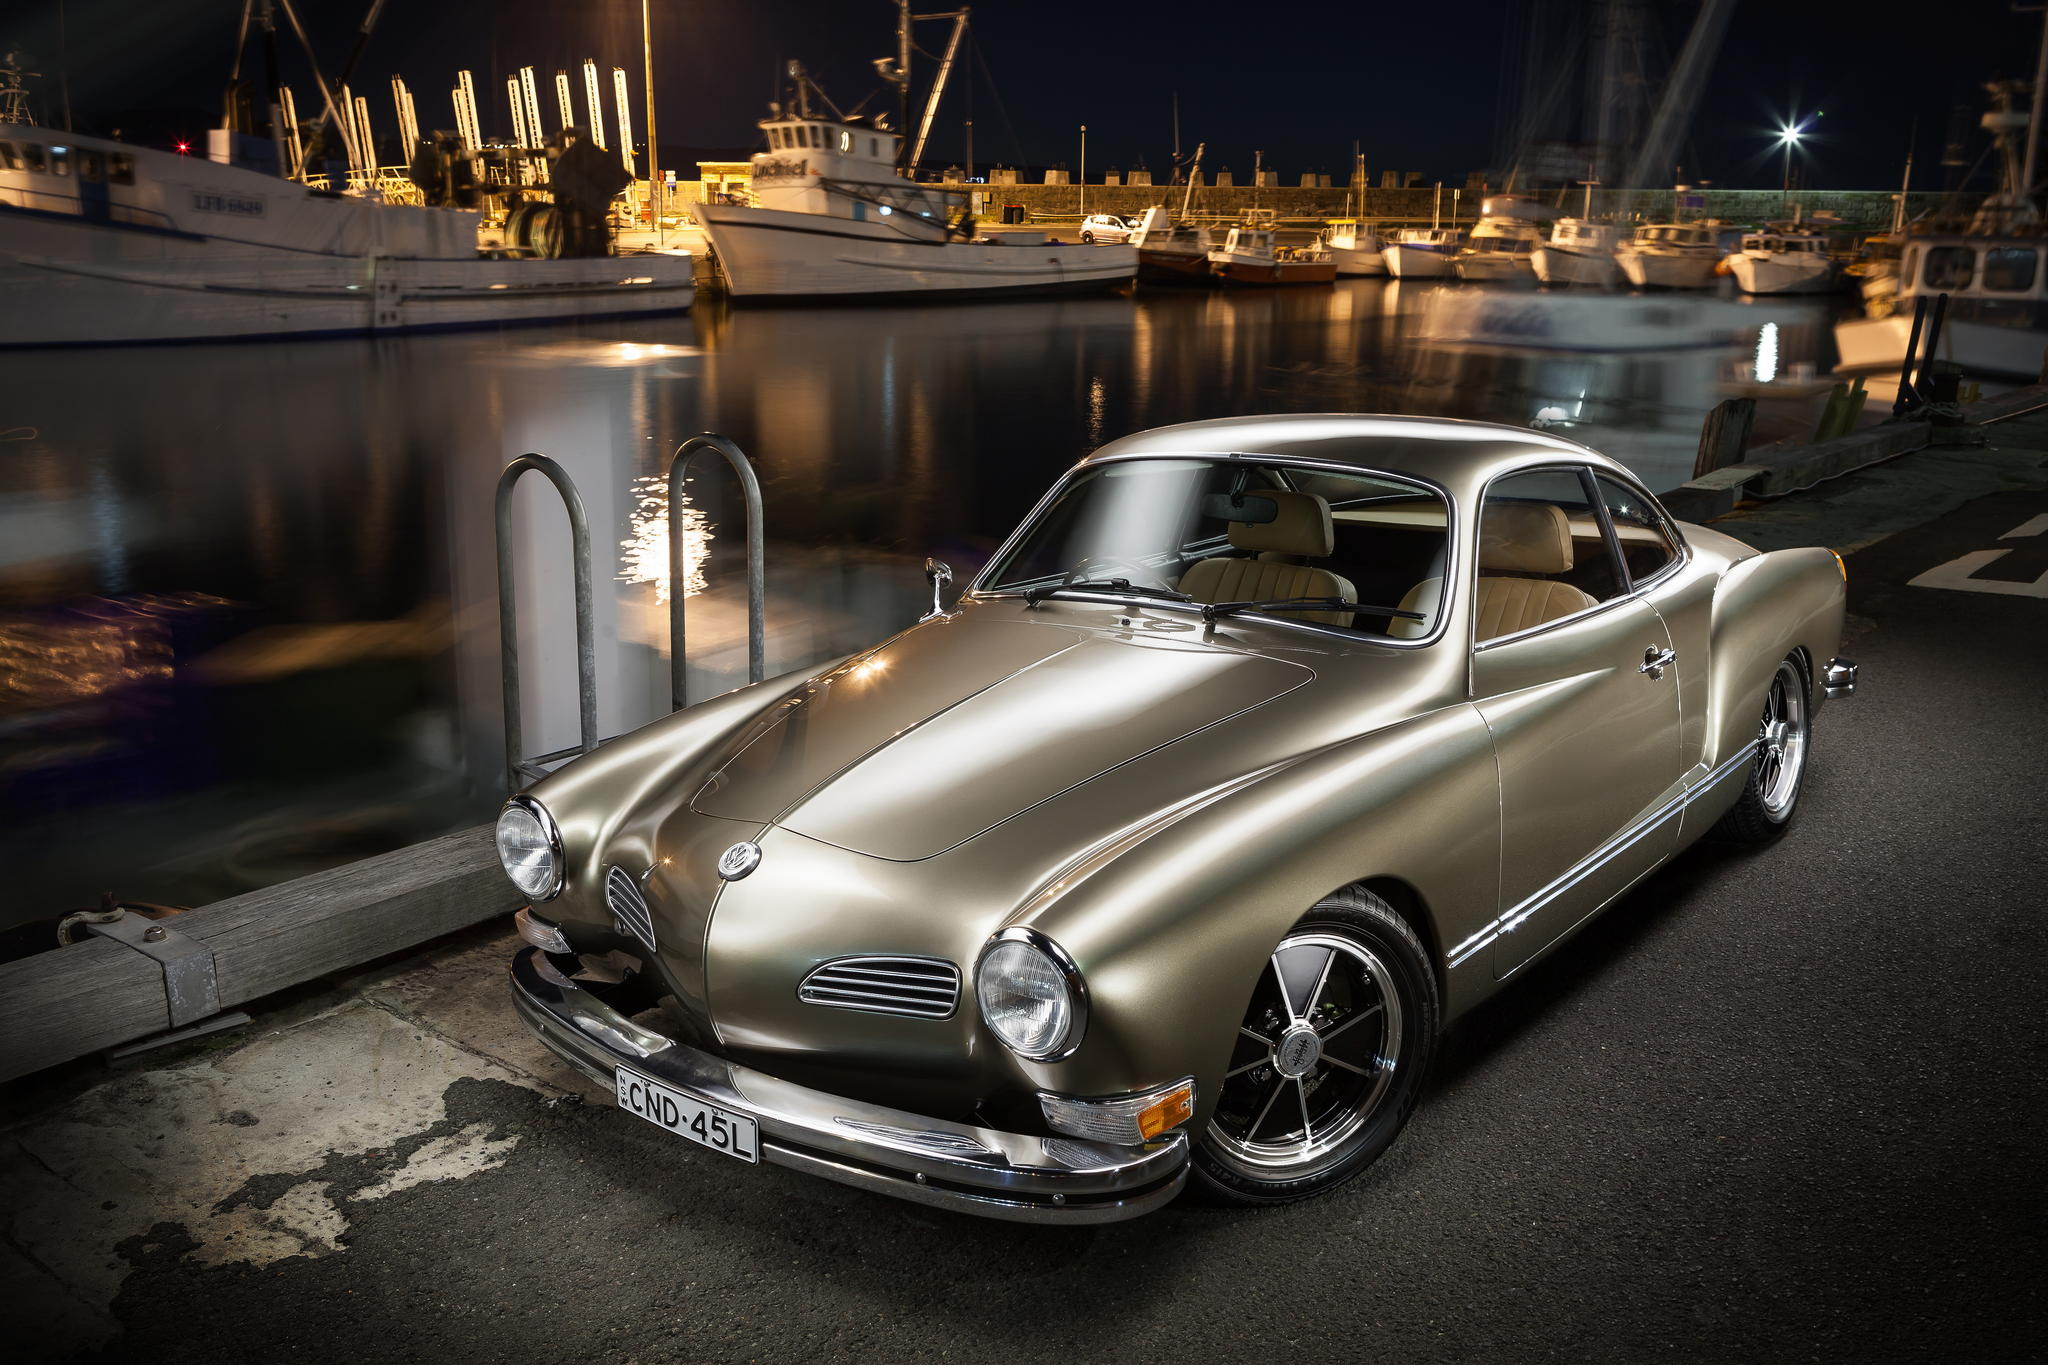 150865 Screensavers and Wallpapers Side View for phone. Download Cars, Volkswagen, Side View, Karmann Ghia, 1973 pictures for free